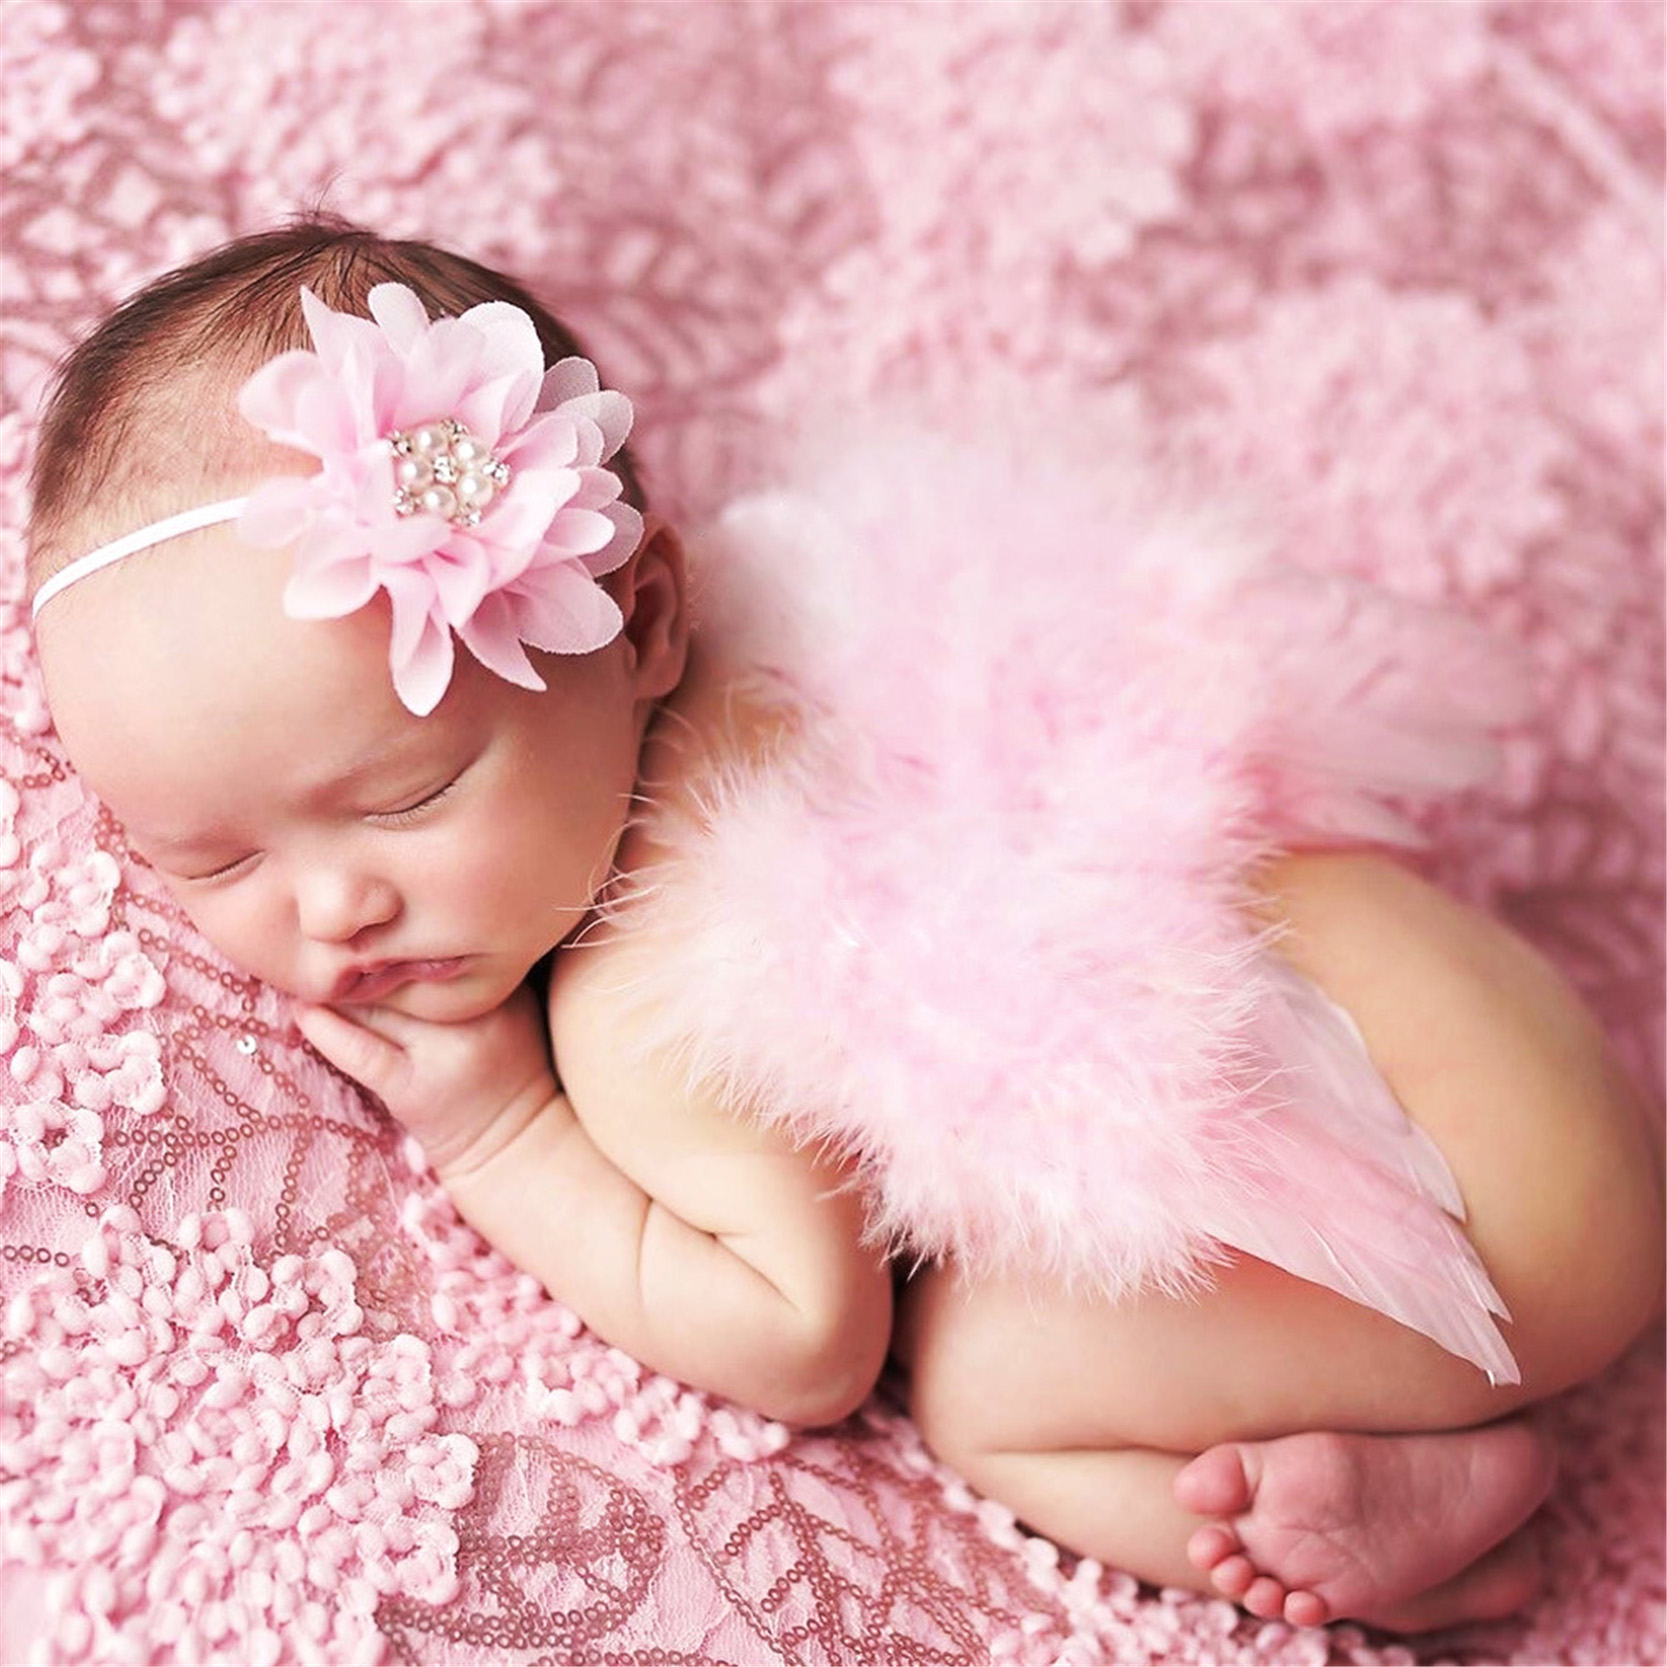 Cute angel wings feather baby girl flower pearl chiffon hairband photo shoot hair band newborn photography props for 0 9 months in hats caps from mother